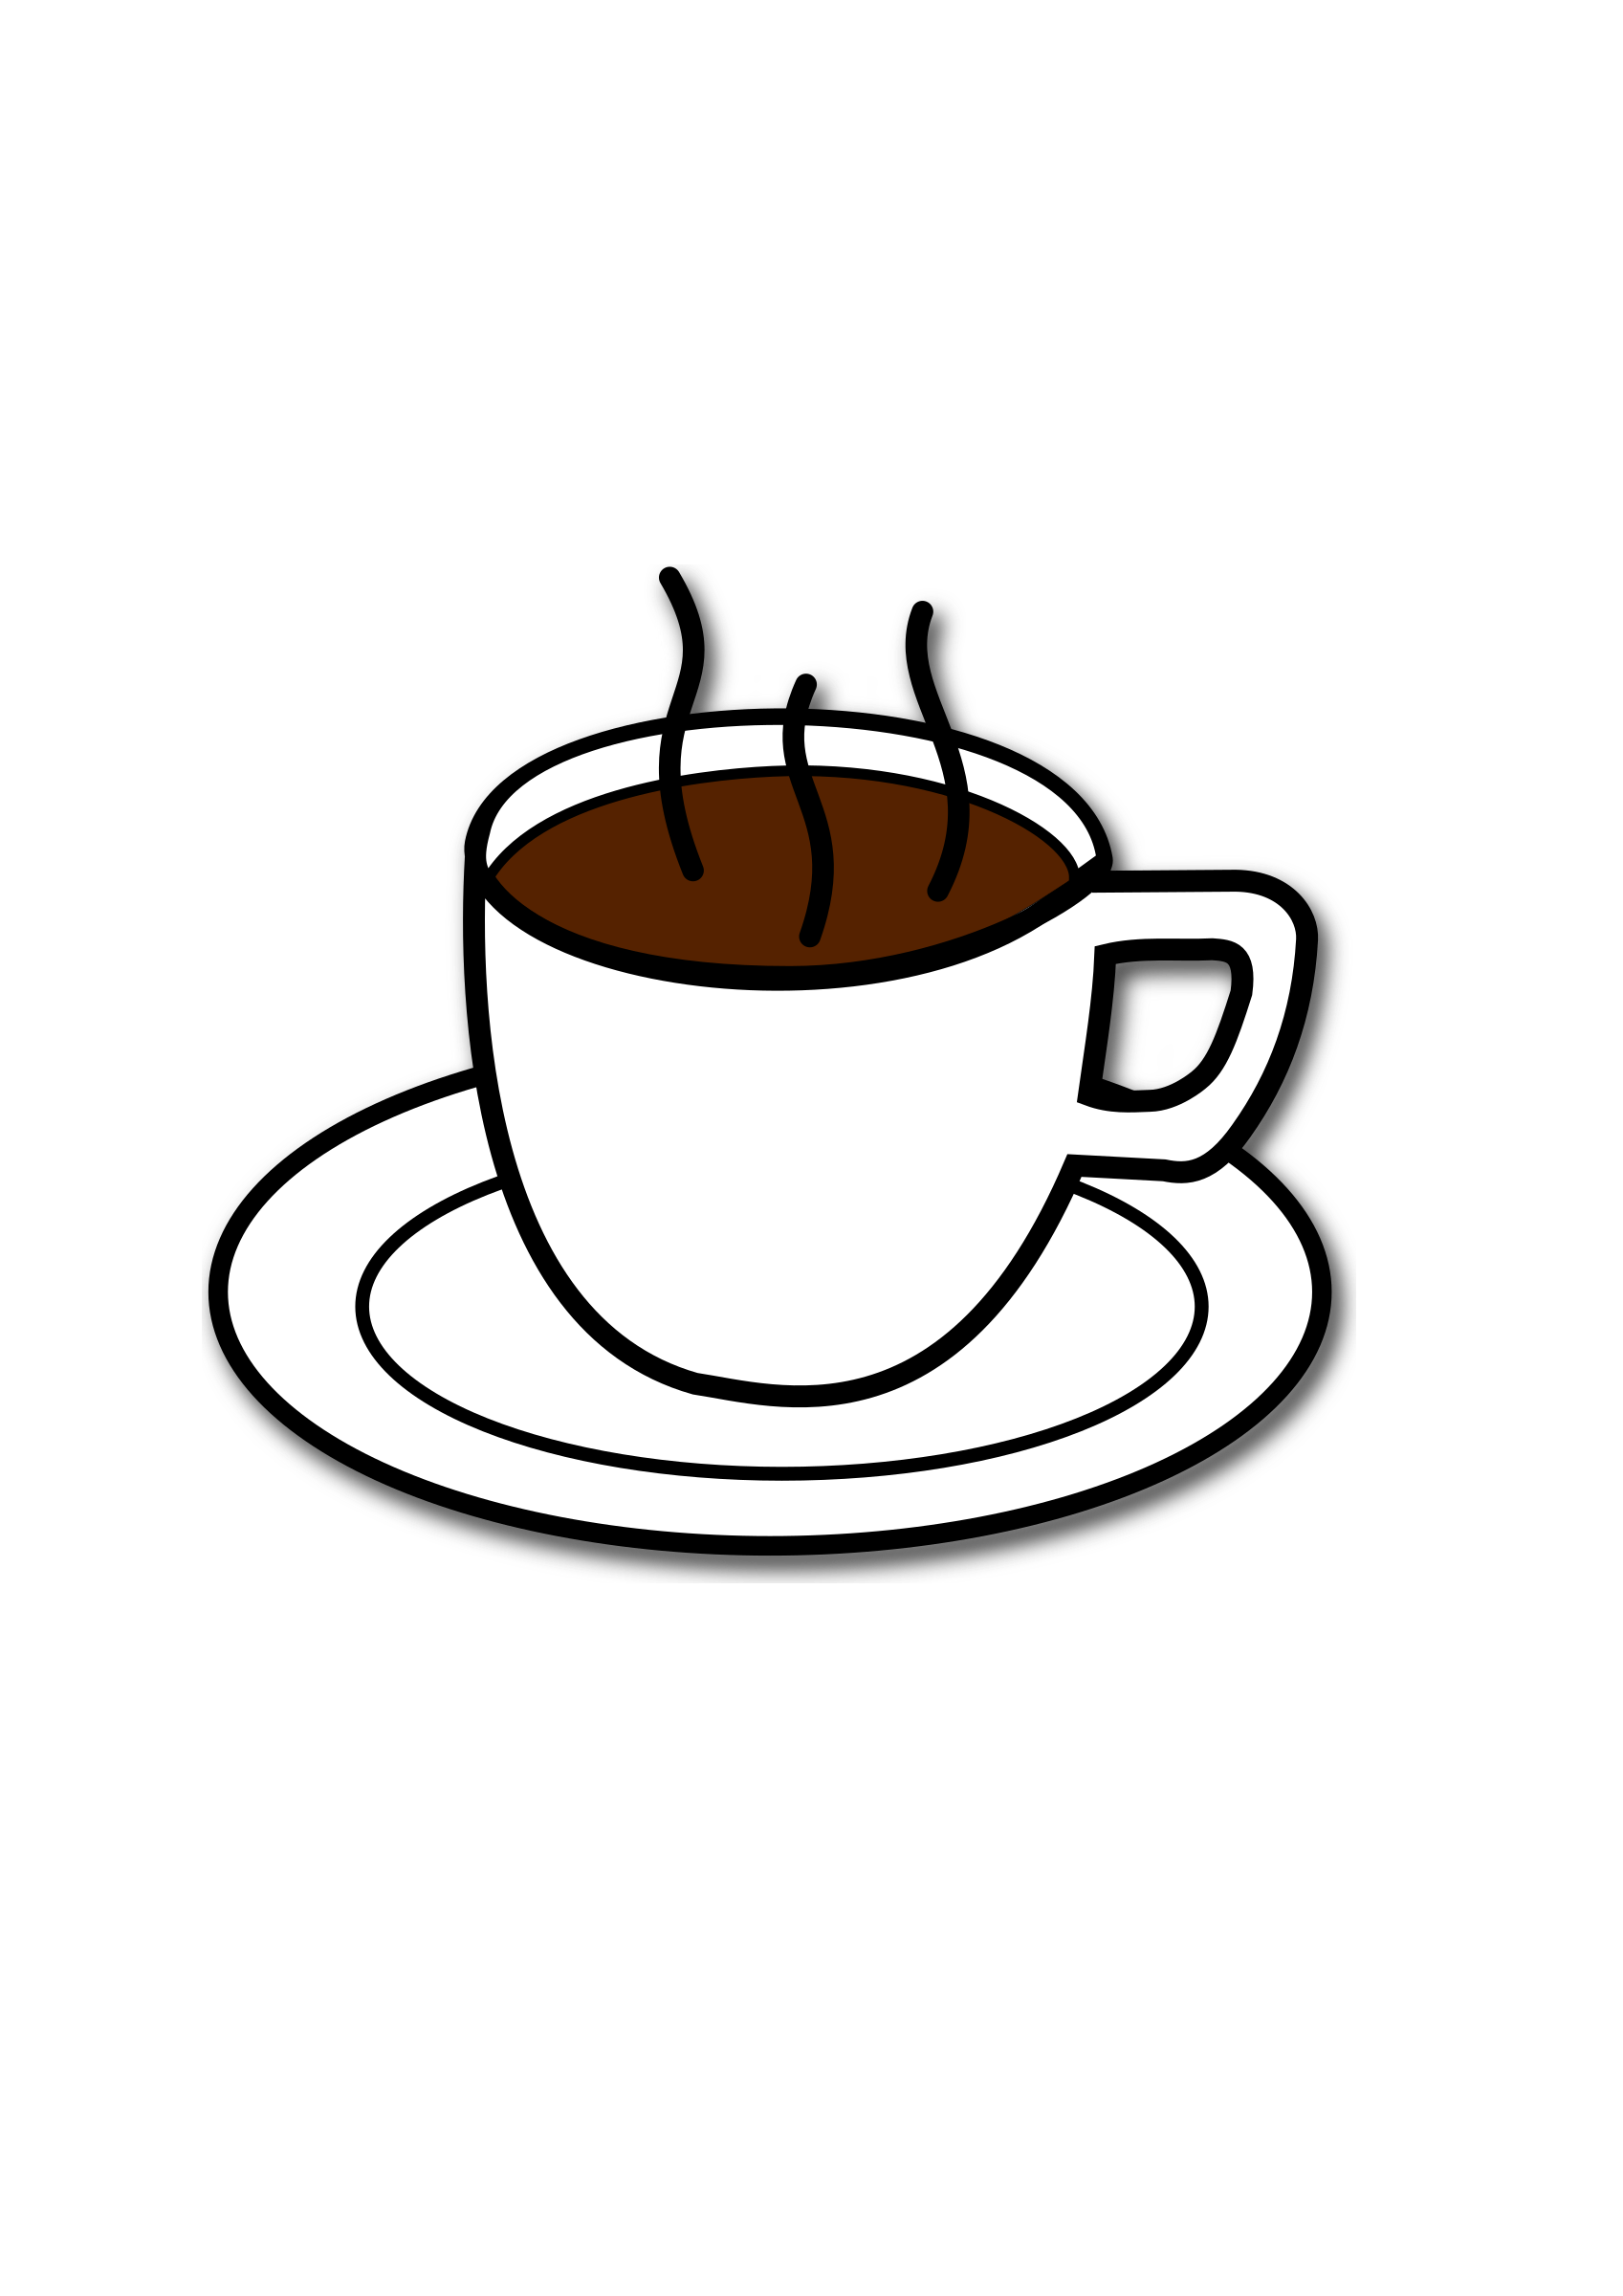 Clipart coffee cup.